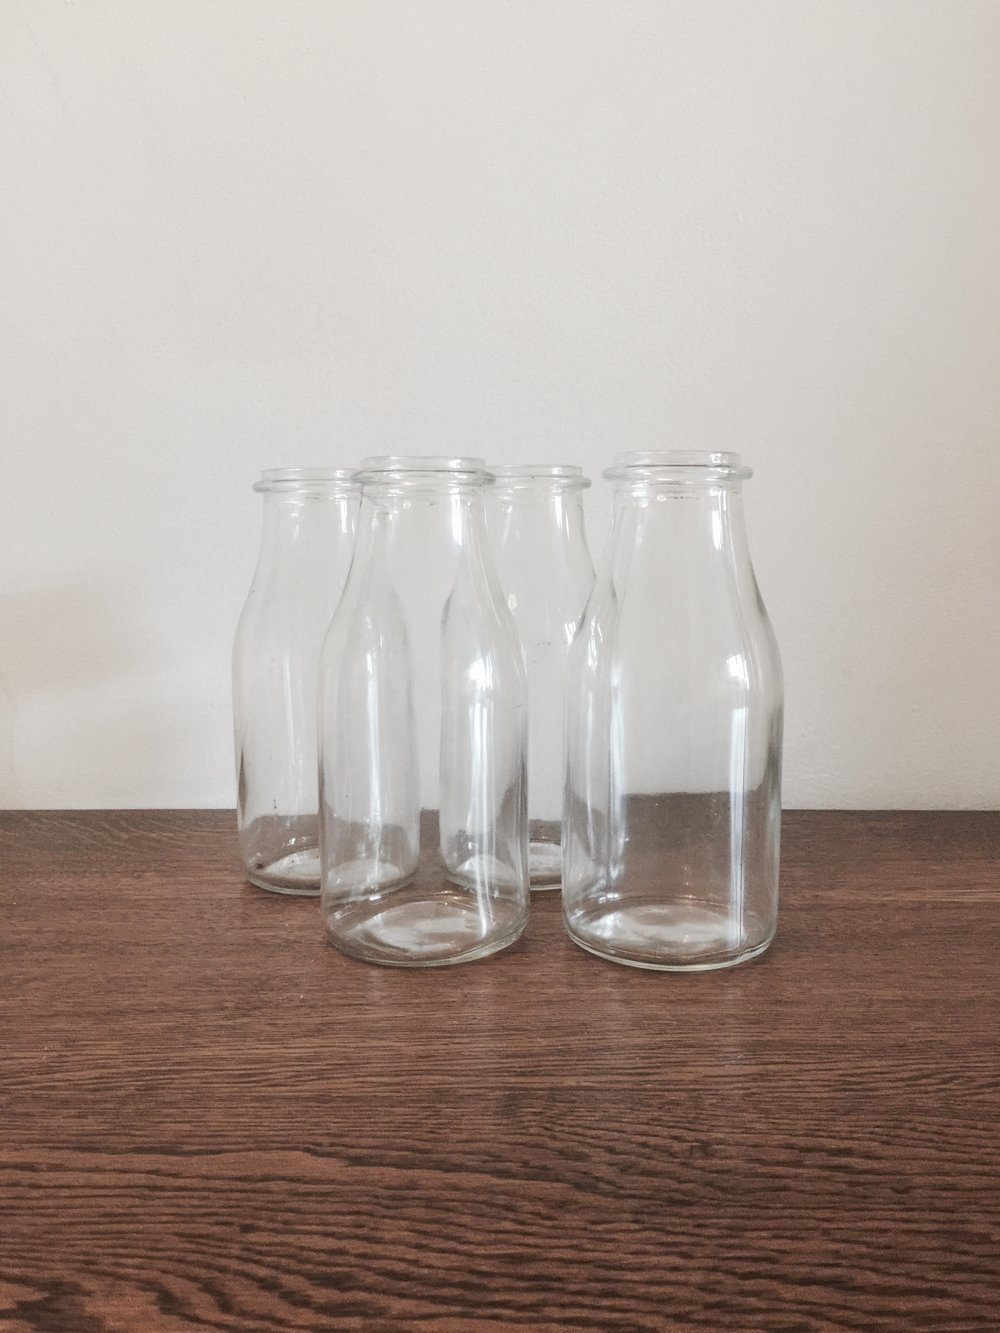 Milk bottles £1 each to hire